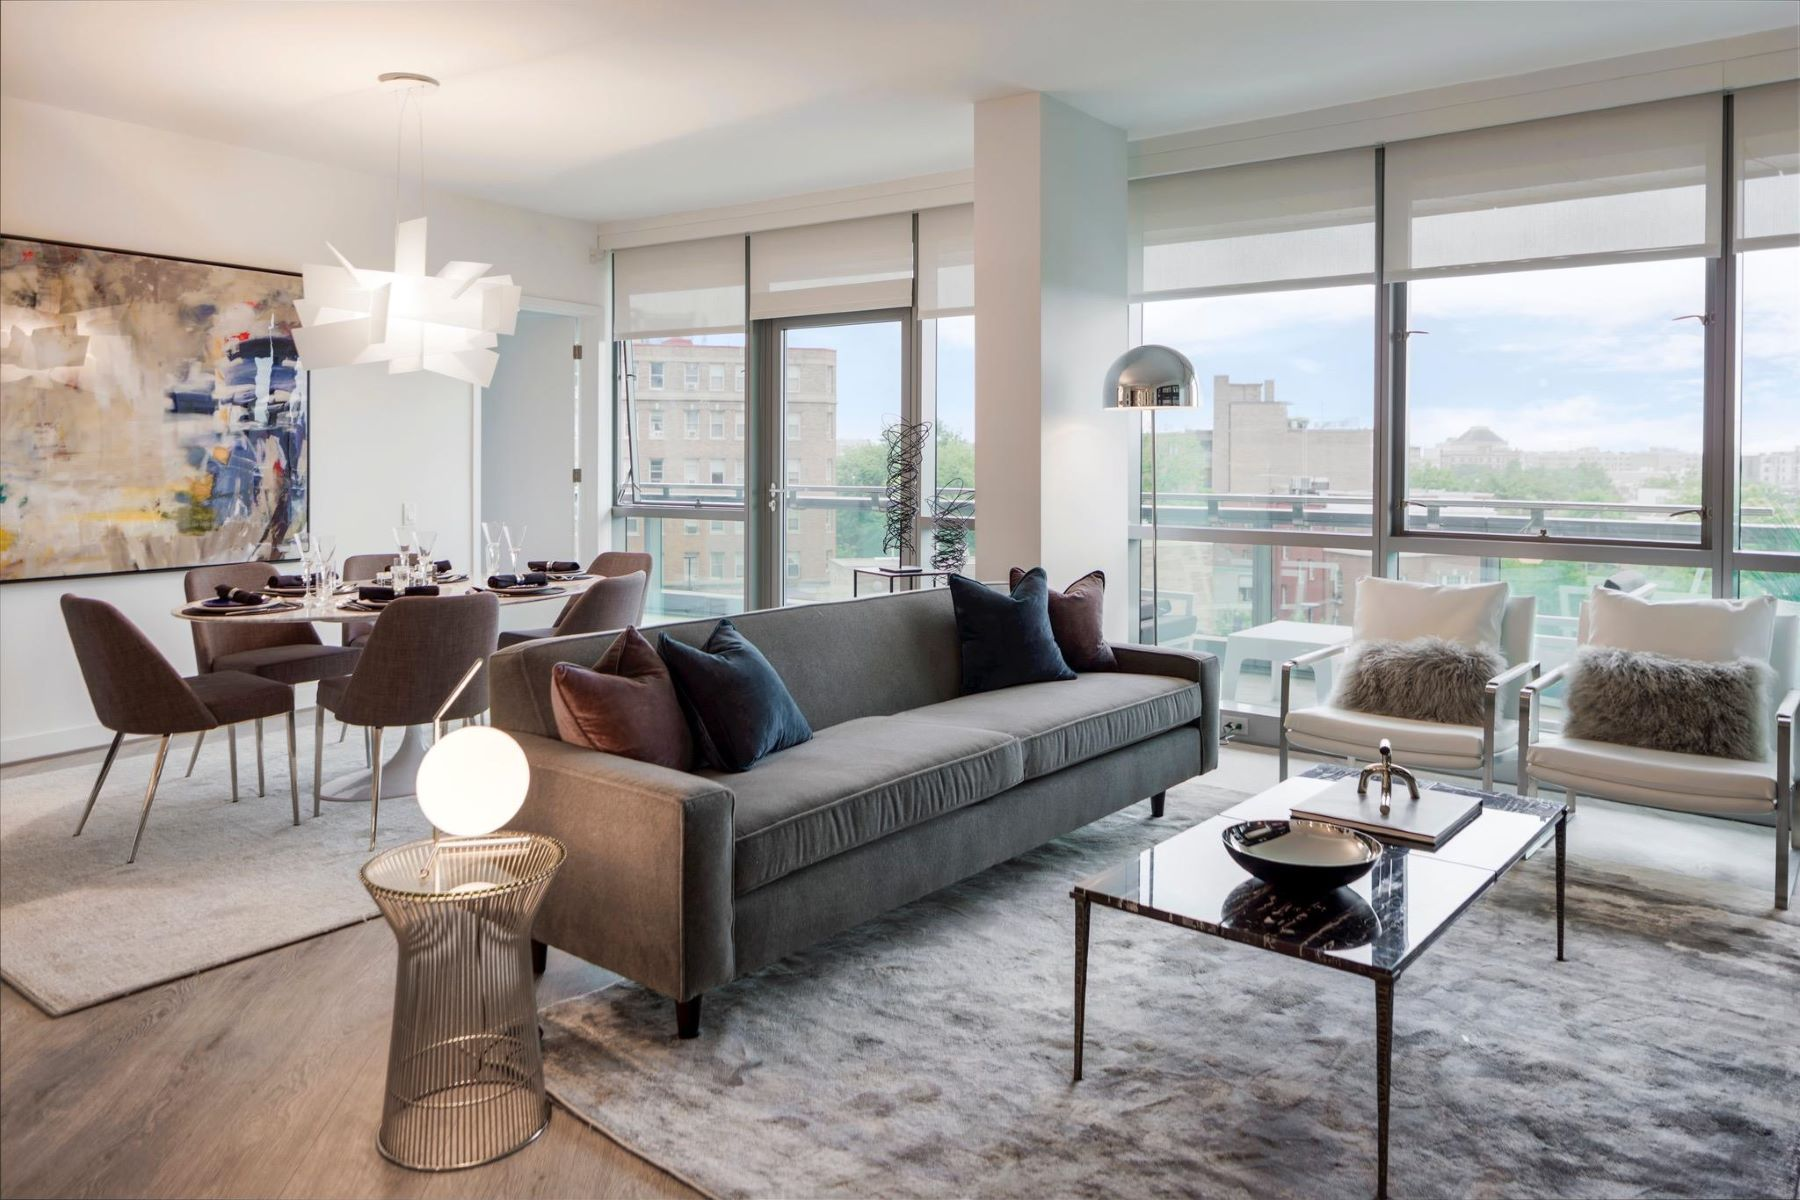 Apartment for Rent at 1901 Connecticut Ave Nw #1109 1901 Connecticut Ave Nw #1109 Washington, District Of Columbia 20009 United States